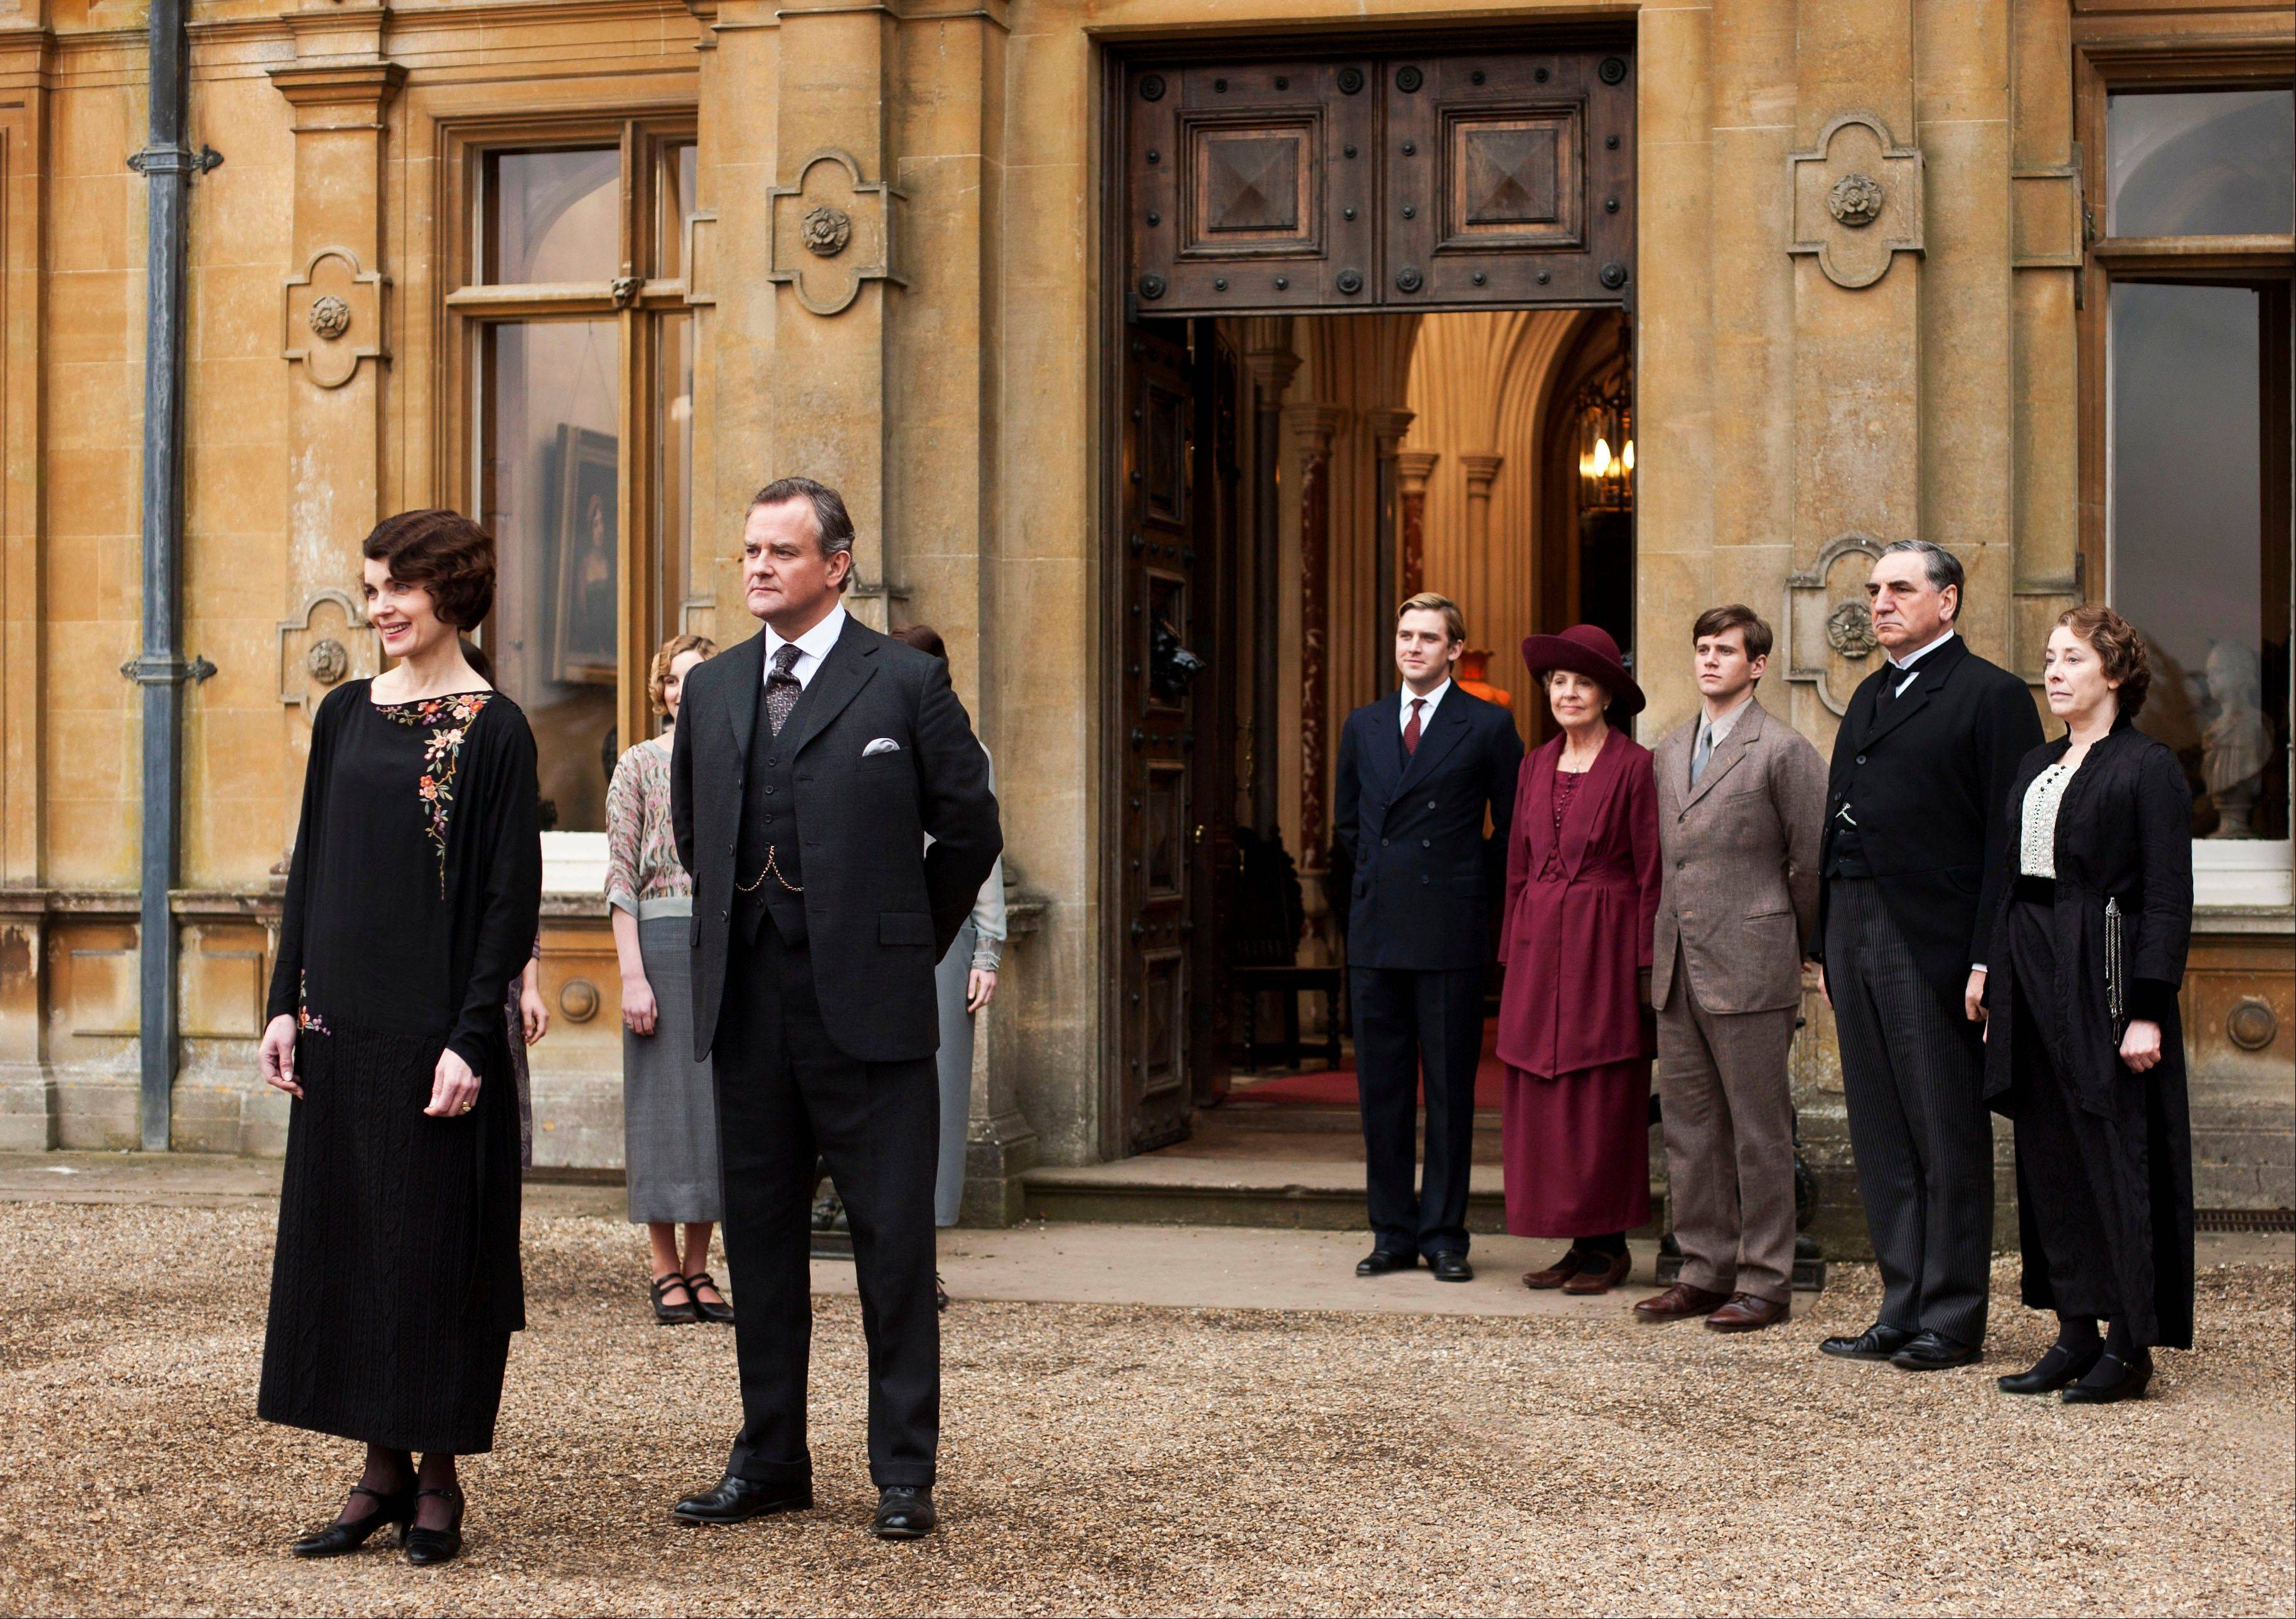 Courtesy of PBS Elizabeth McGovern as Lady Grantham, left, Hugh Bonneville as Lord Grantham, Dan Stevens as Matthew Crawley, Penelope Wilton as Isobel Crawley, Allen Leech as Tom Branson, Jim Carter as Mr. Carson, and Phyllis Logan as Mrs. Hughes, from the TV series, �Downton Abbey.�